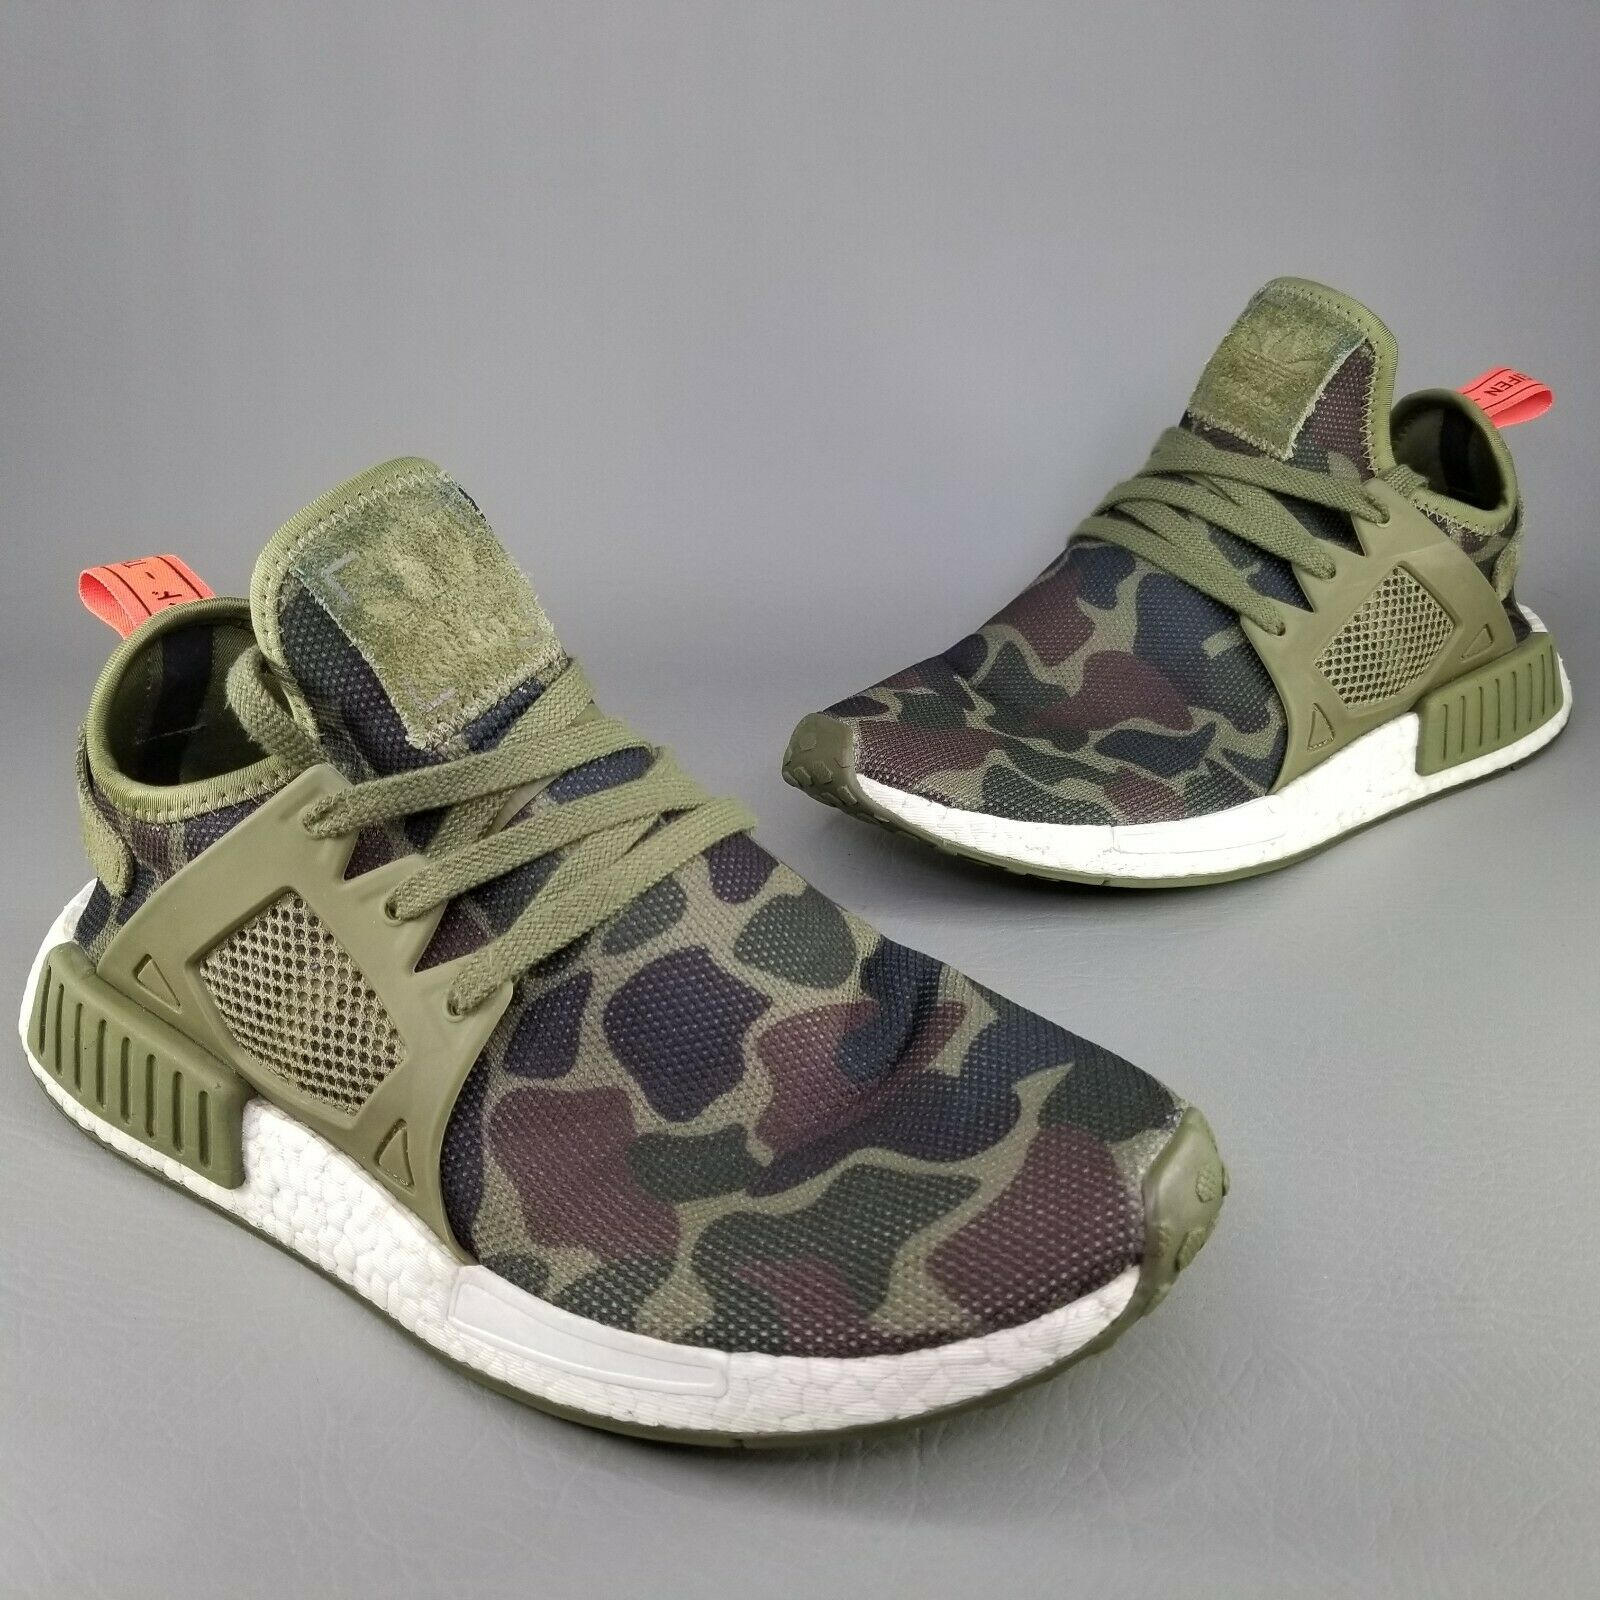 adidas running shoes olive green